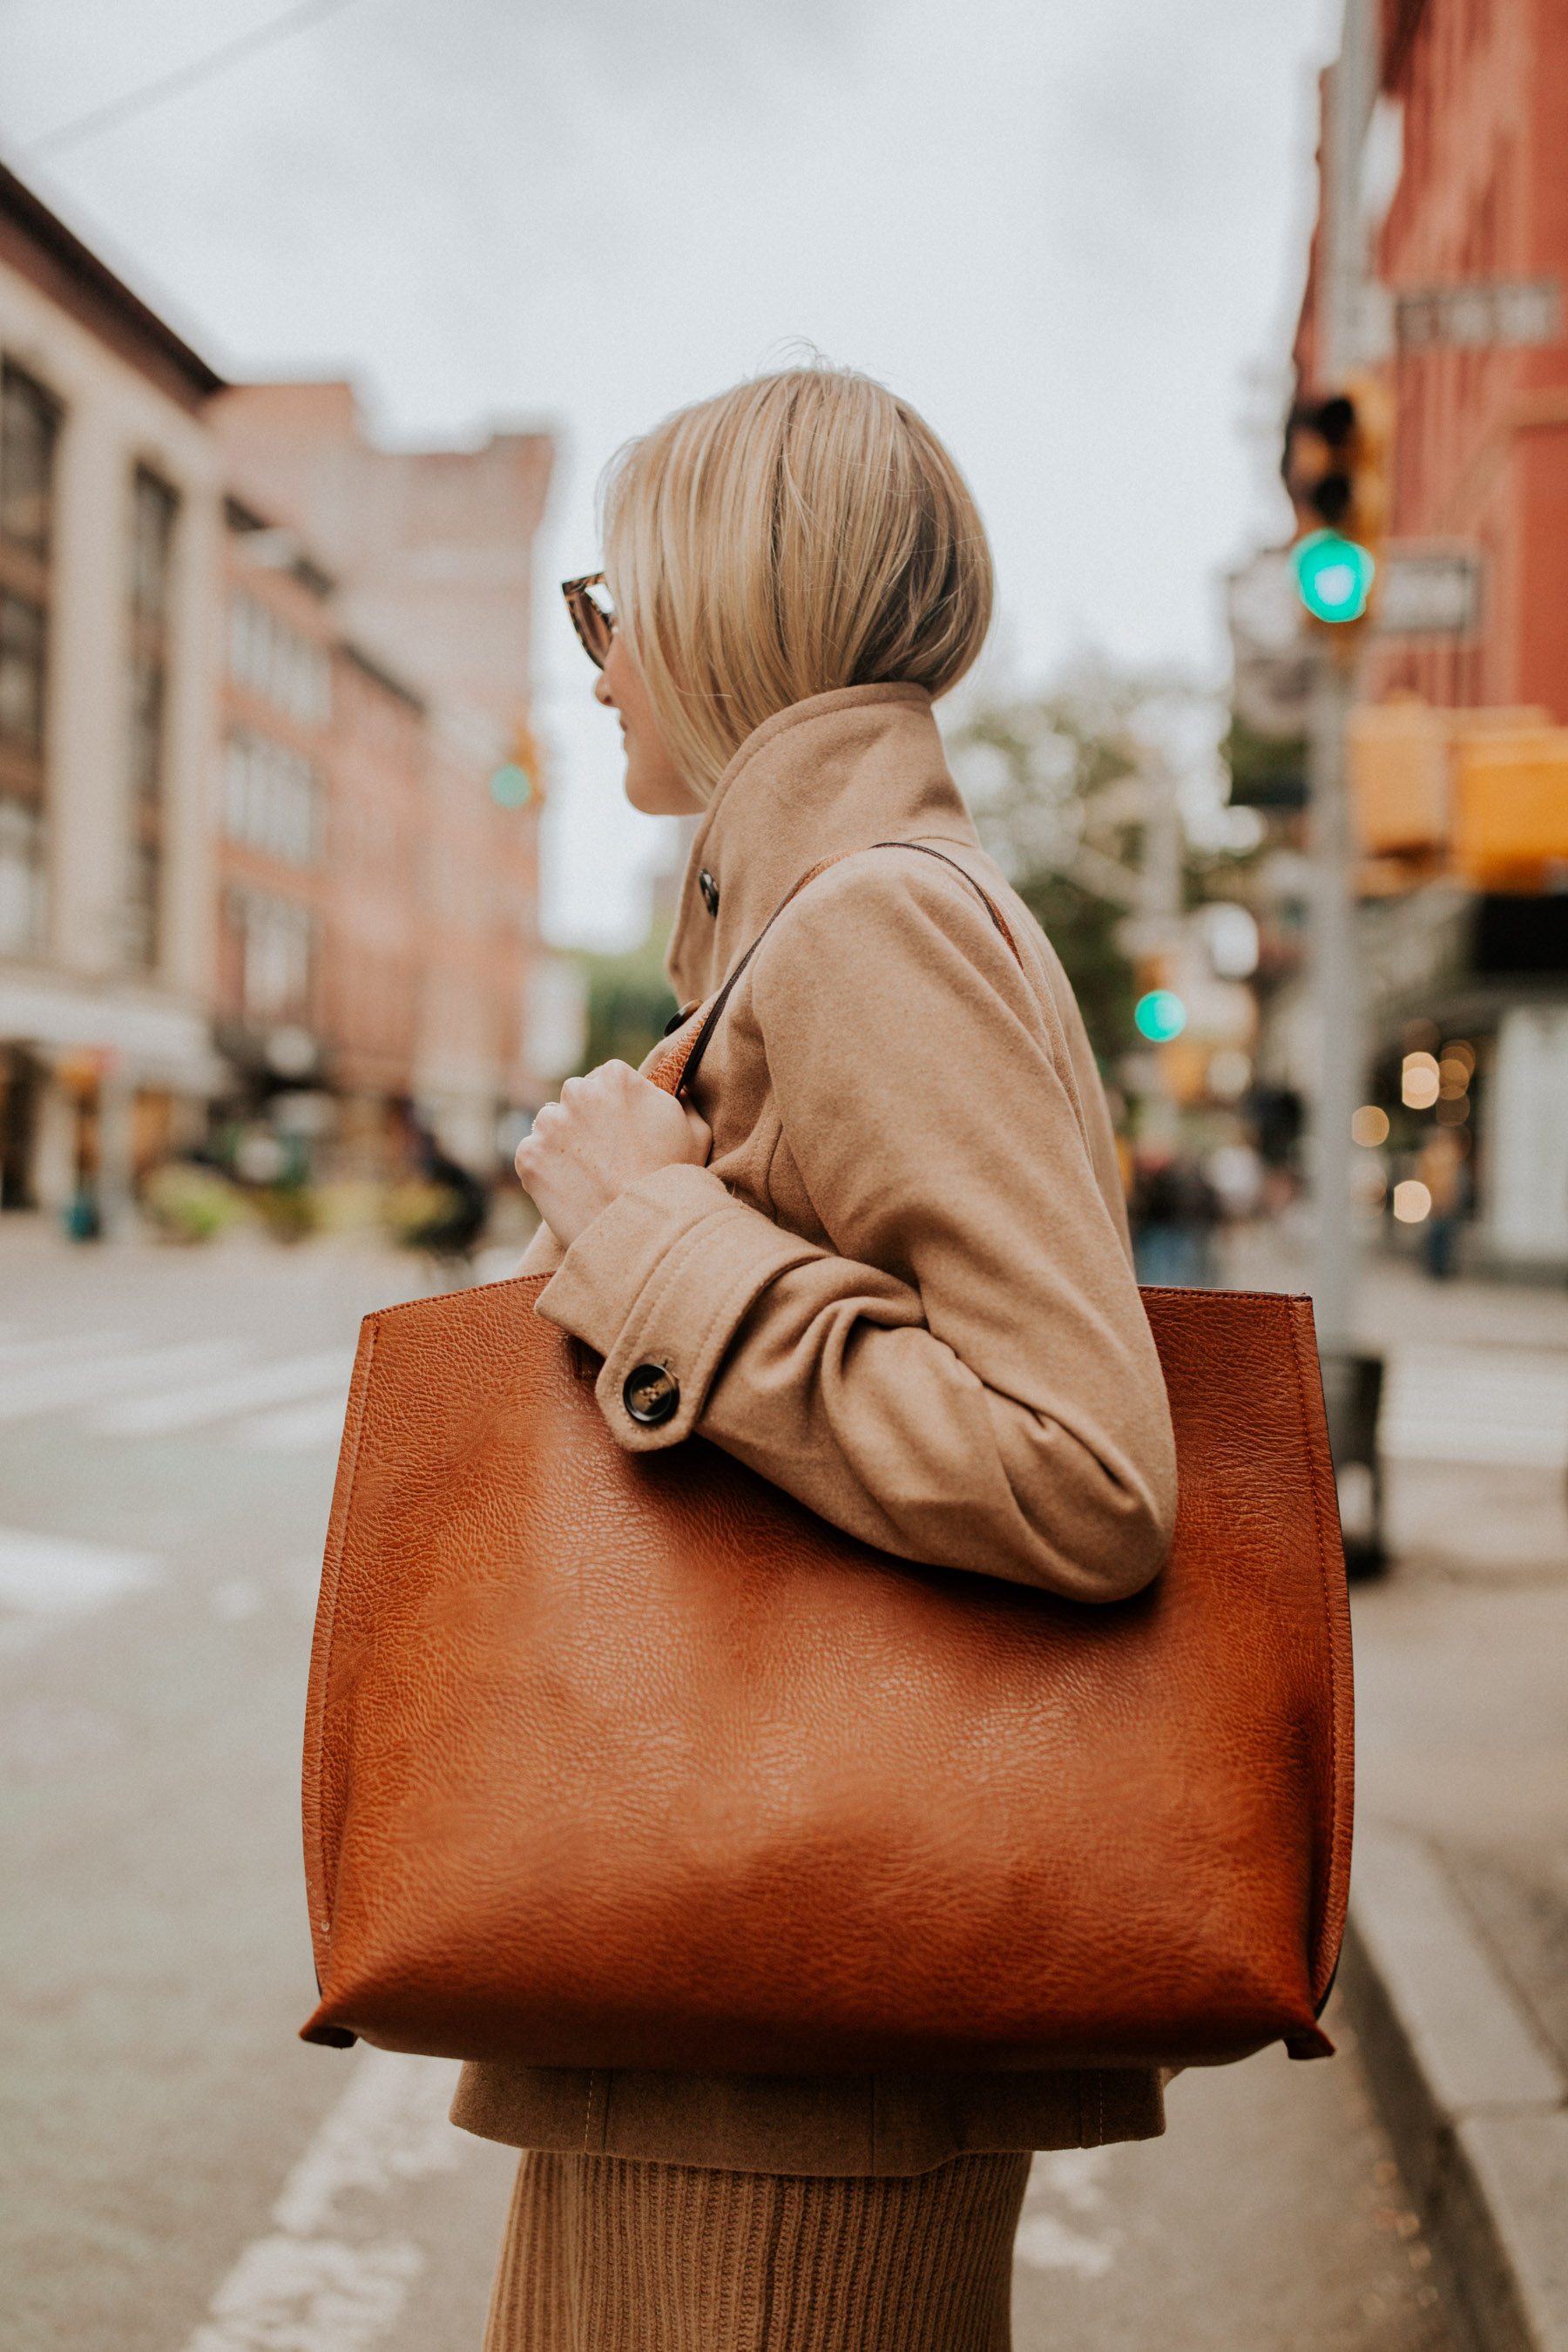 $38 Peacoat / Camel Sweater Dress / $49 Faux Leather Tote